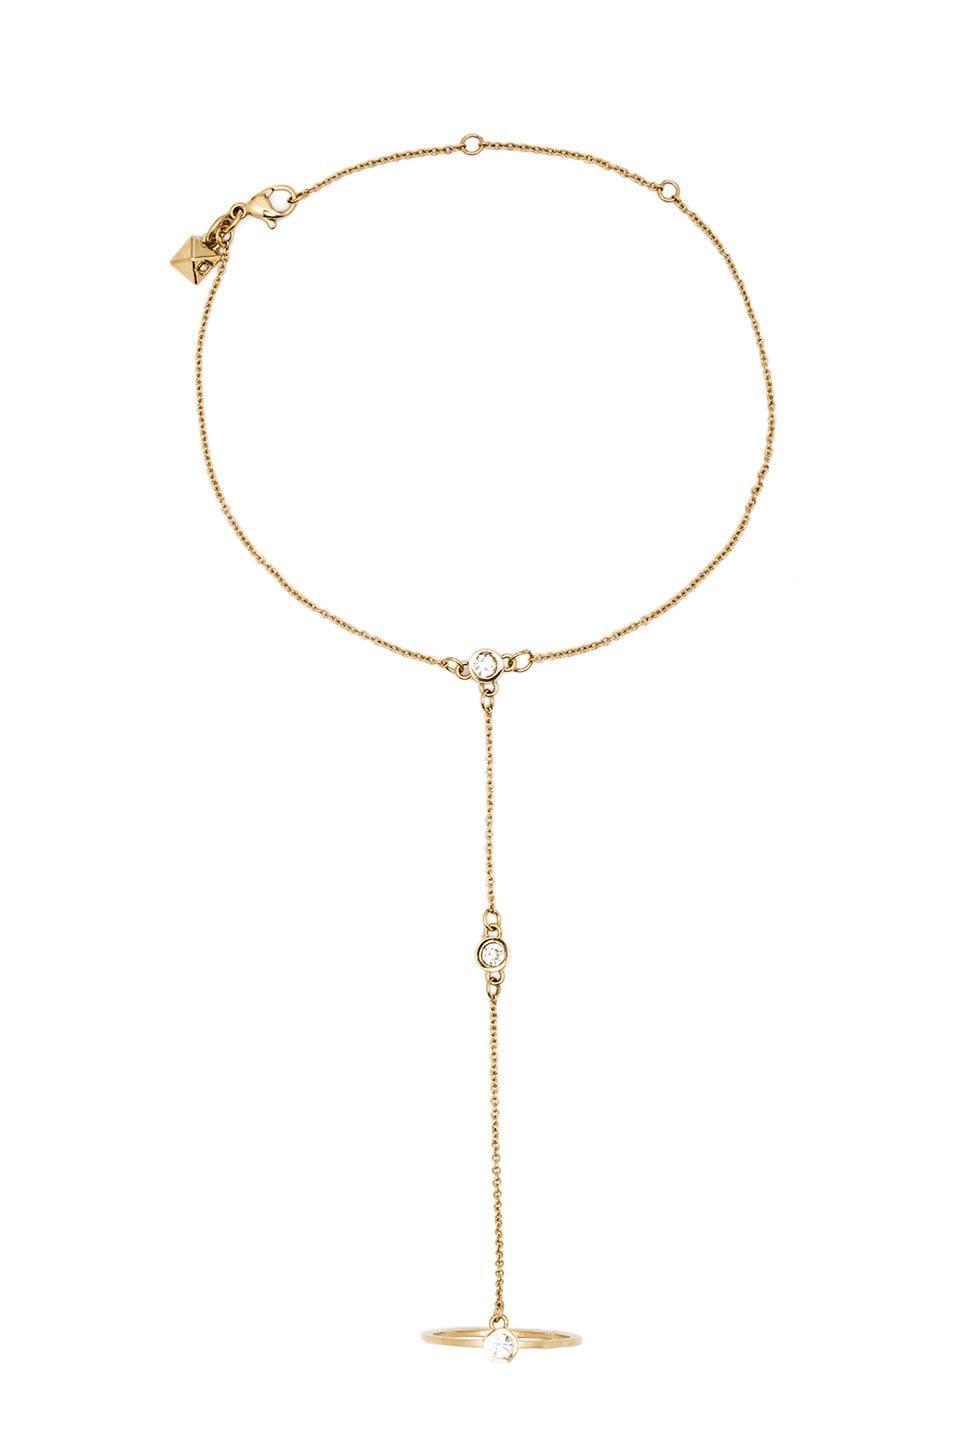 Rebecca Minkoff Crystal Stone Handchain in 14 KT Gold Plate